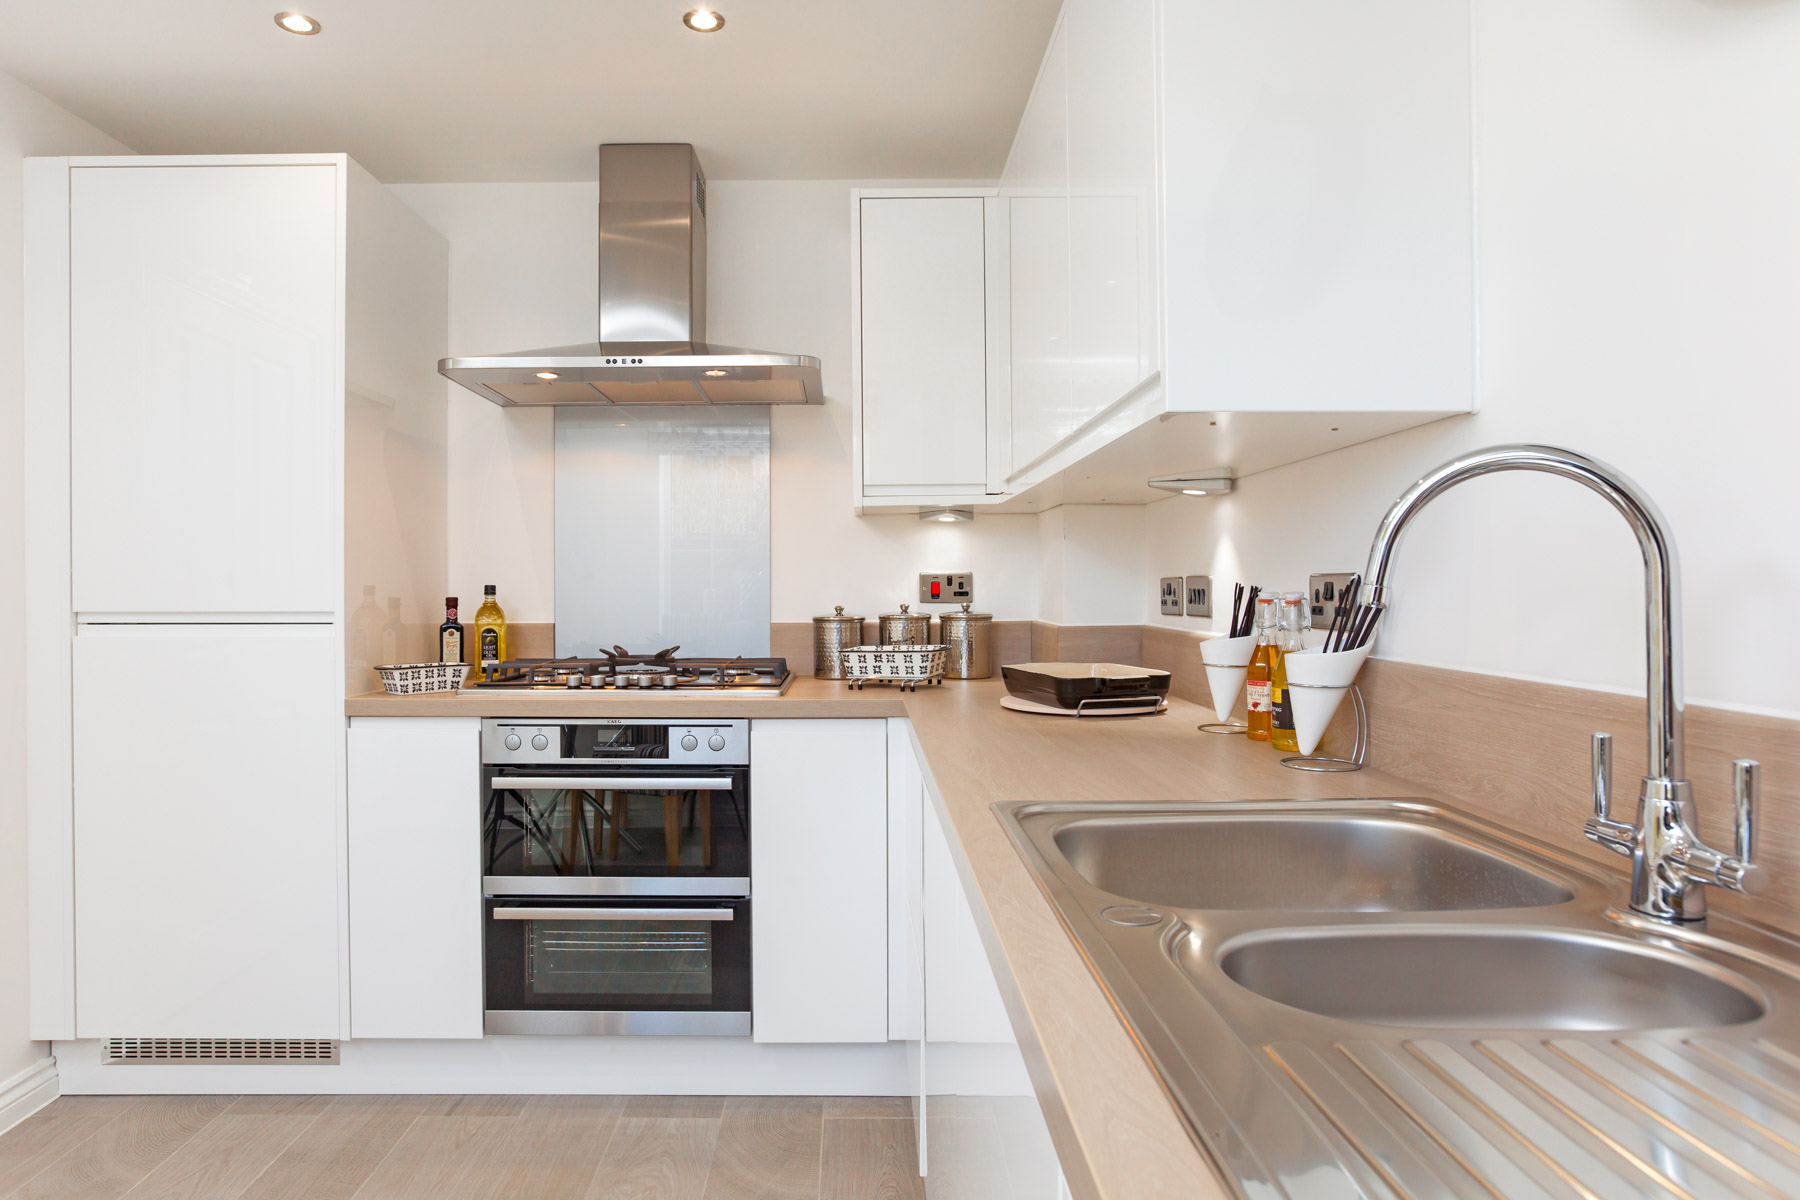 TW Exeter - Rackenford Meadow - Ashton example kitchen 2